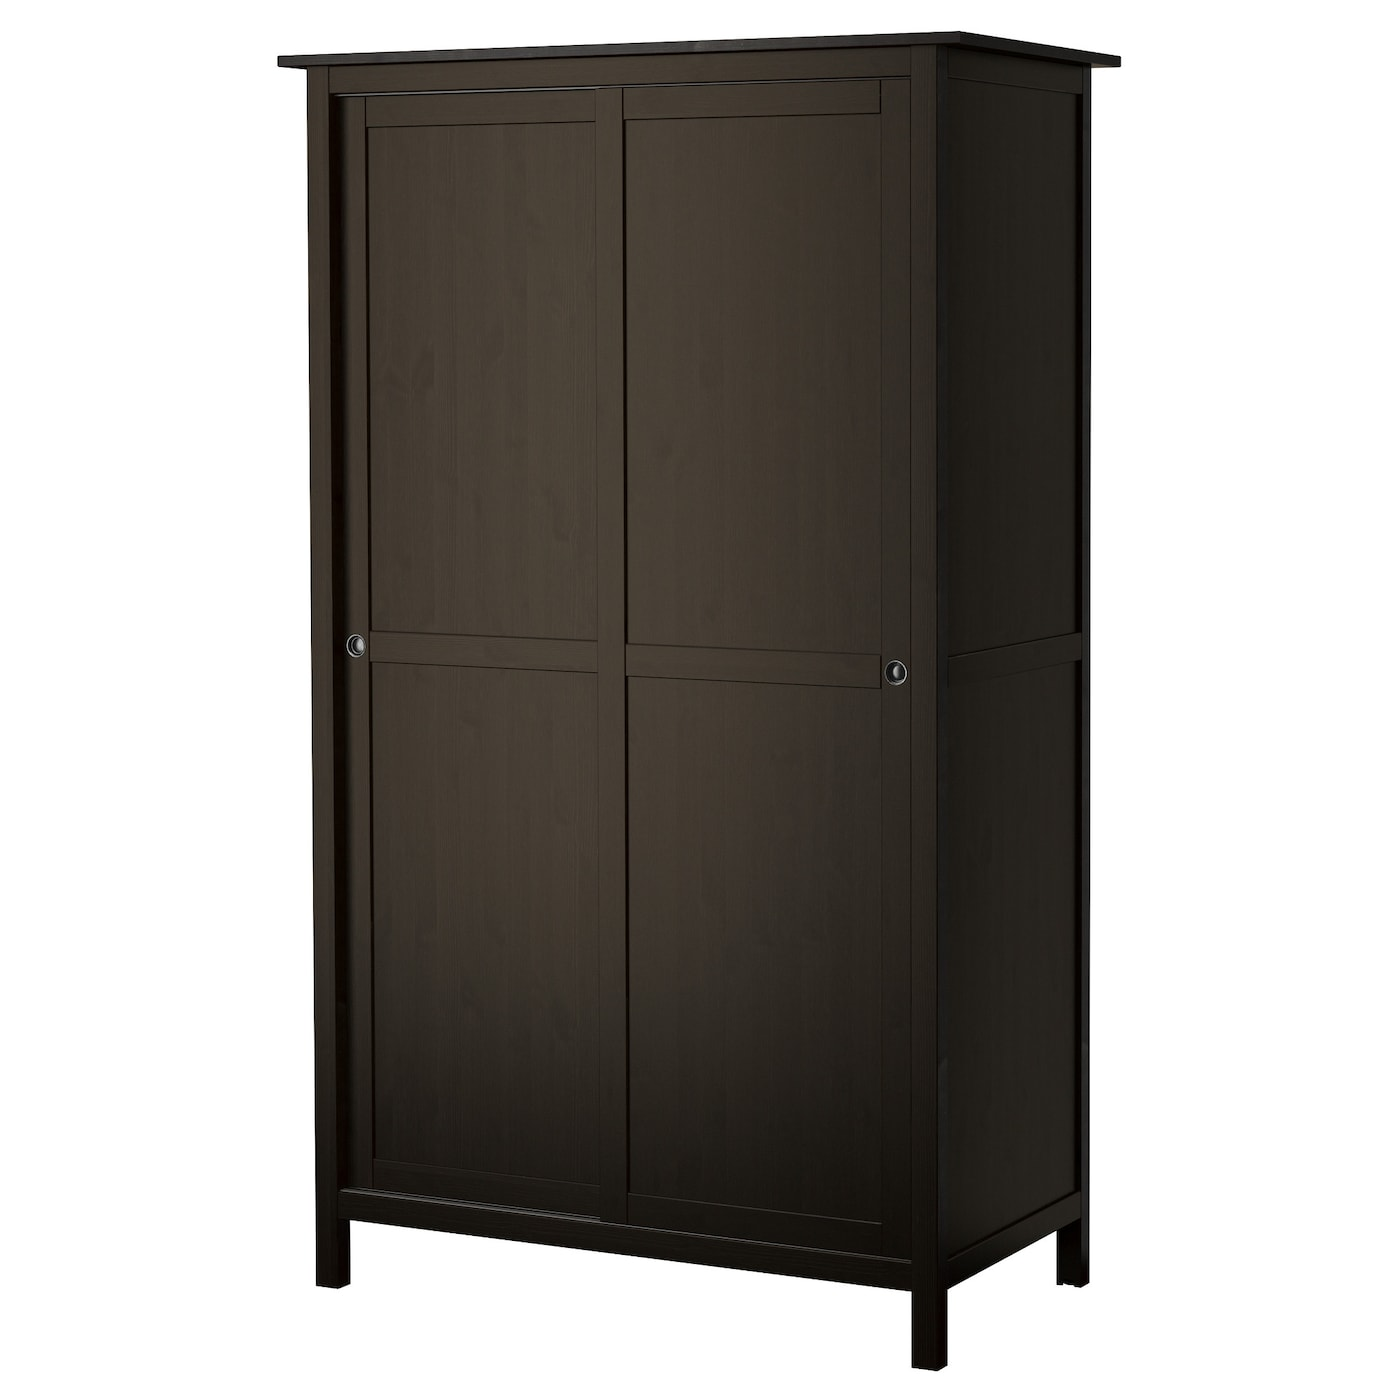 hemnes armoire 2 portes coulissantes brun noir 120x197 cm ikea. Black Bedroom Furniture Sets. Home Design Ideas